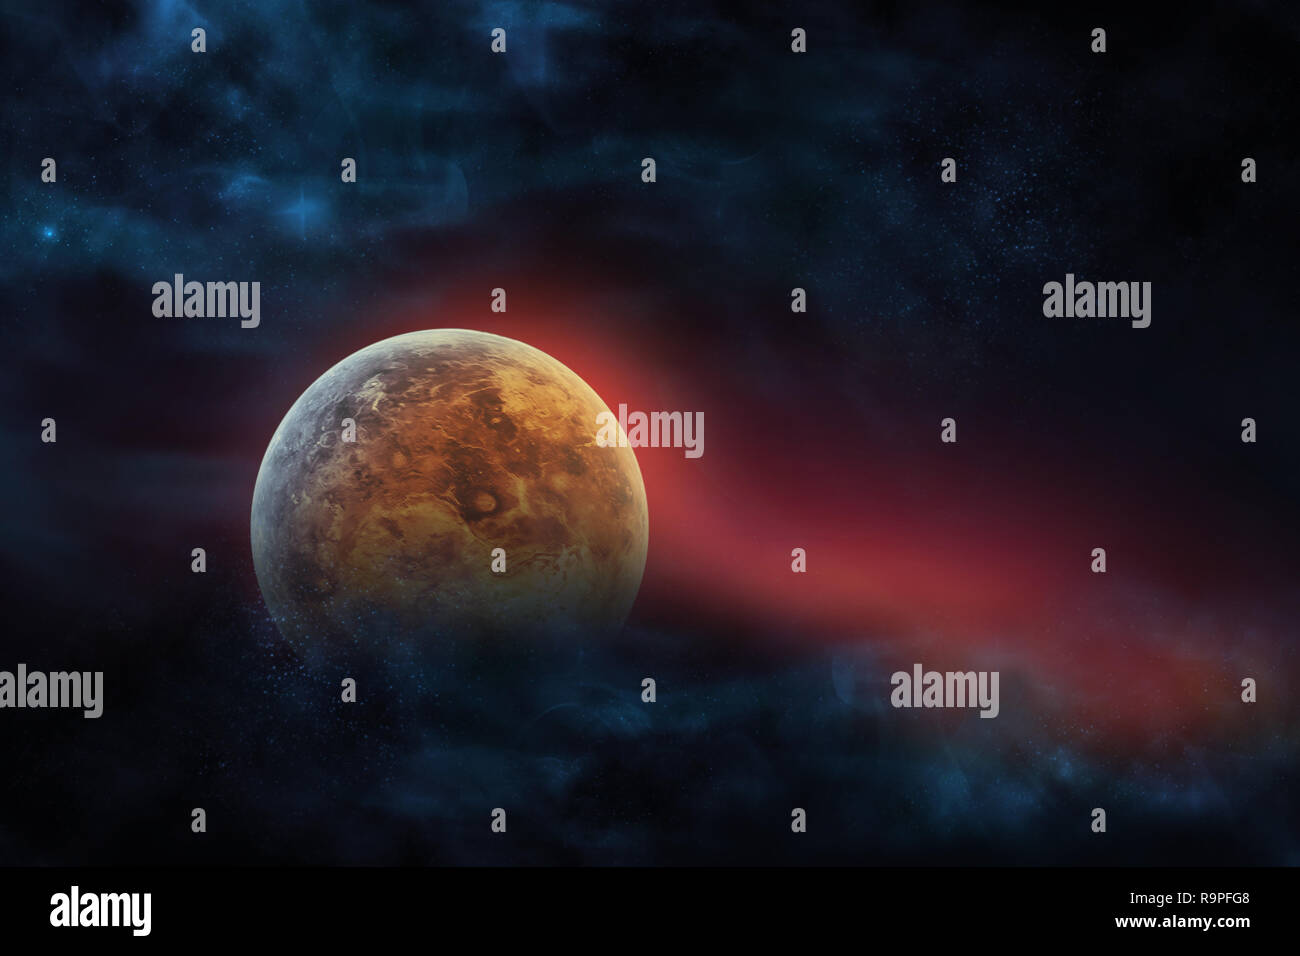 Celestial digital art, Venus planet and galaxies in outer space showing the beauty of space exploration. planet texture furnished by NASA, - Stock Image